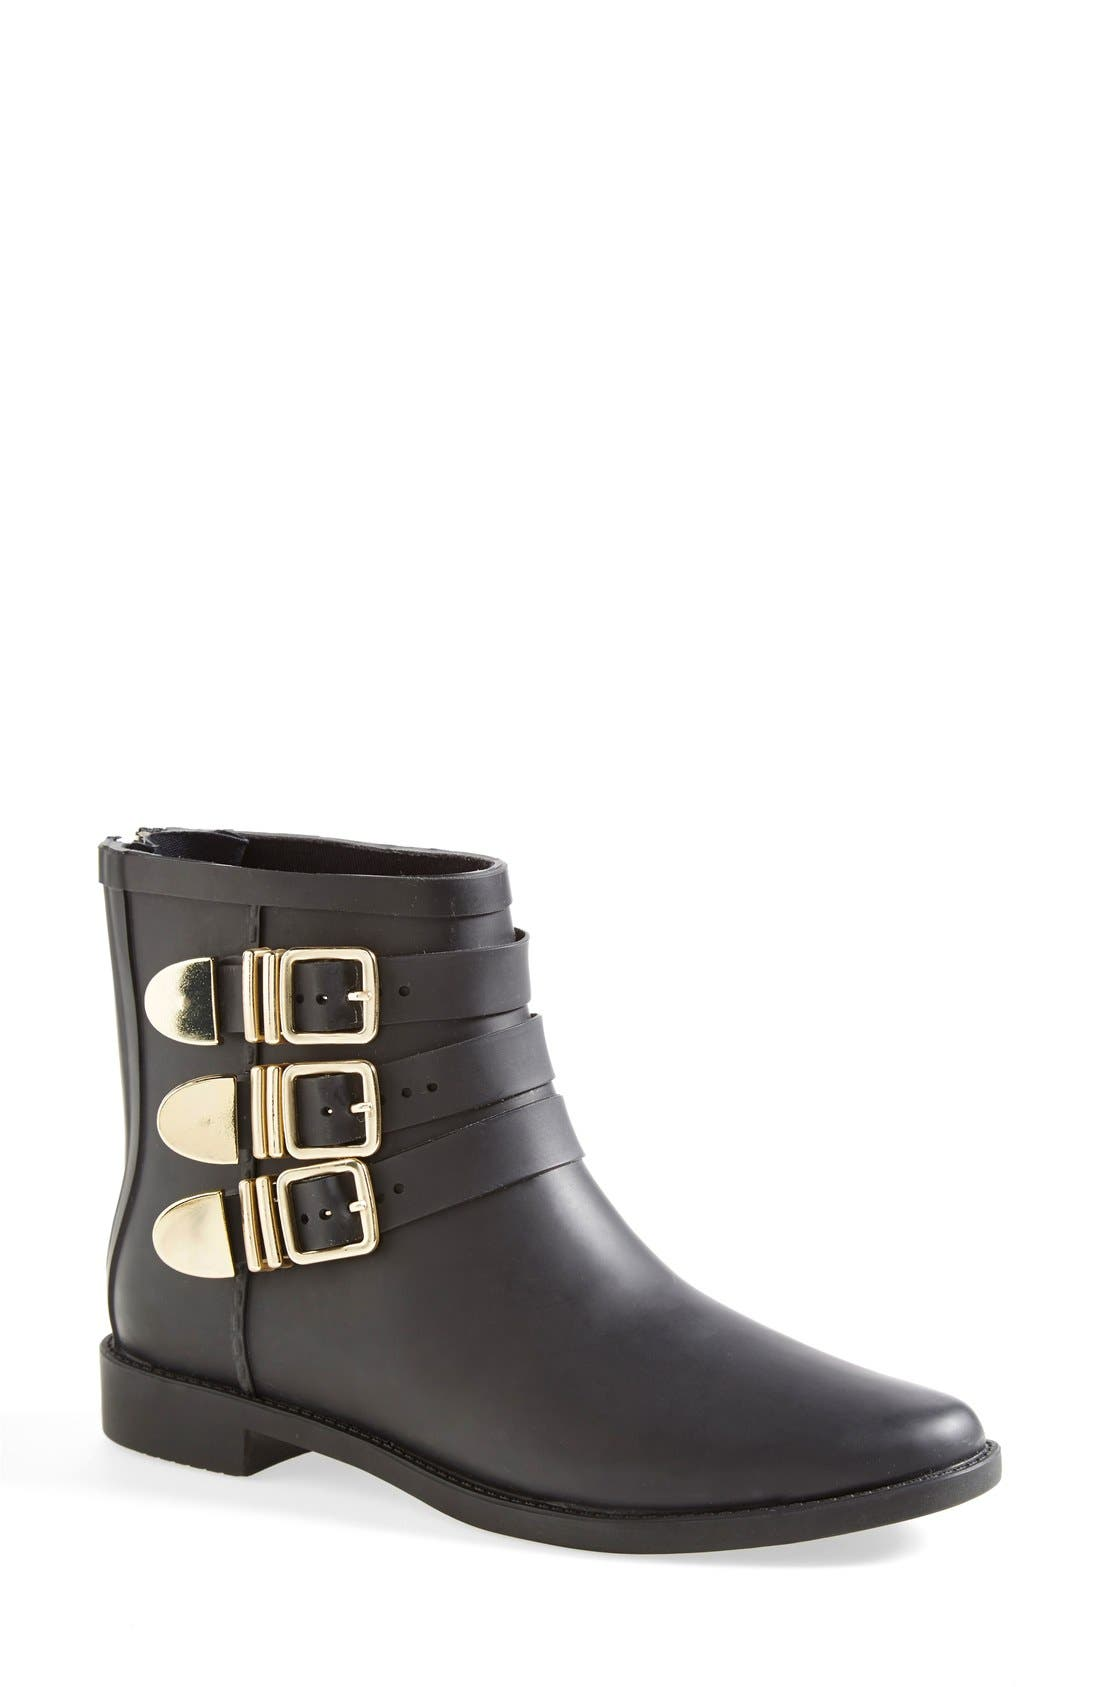 'Fenton' Rain Boot,                             Main thumbnail 1, color,                             Black/ Gold